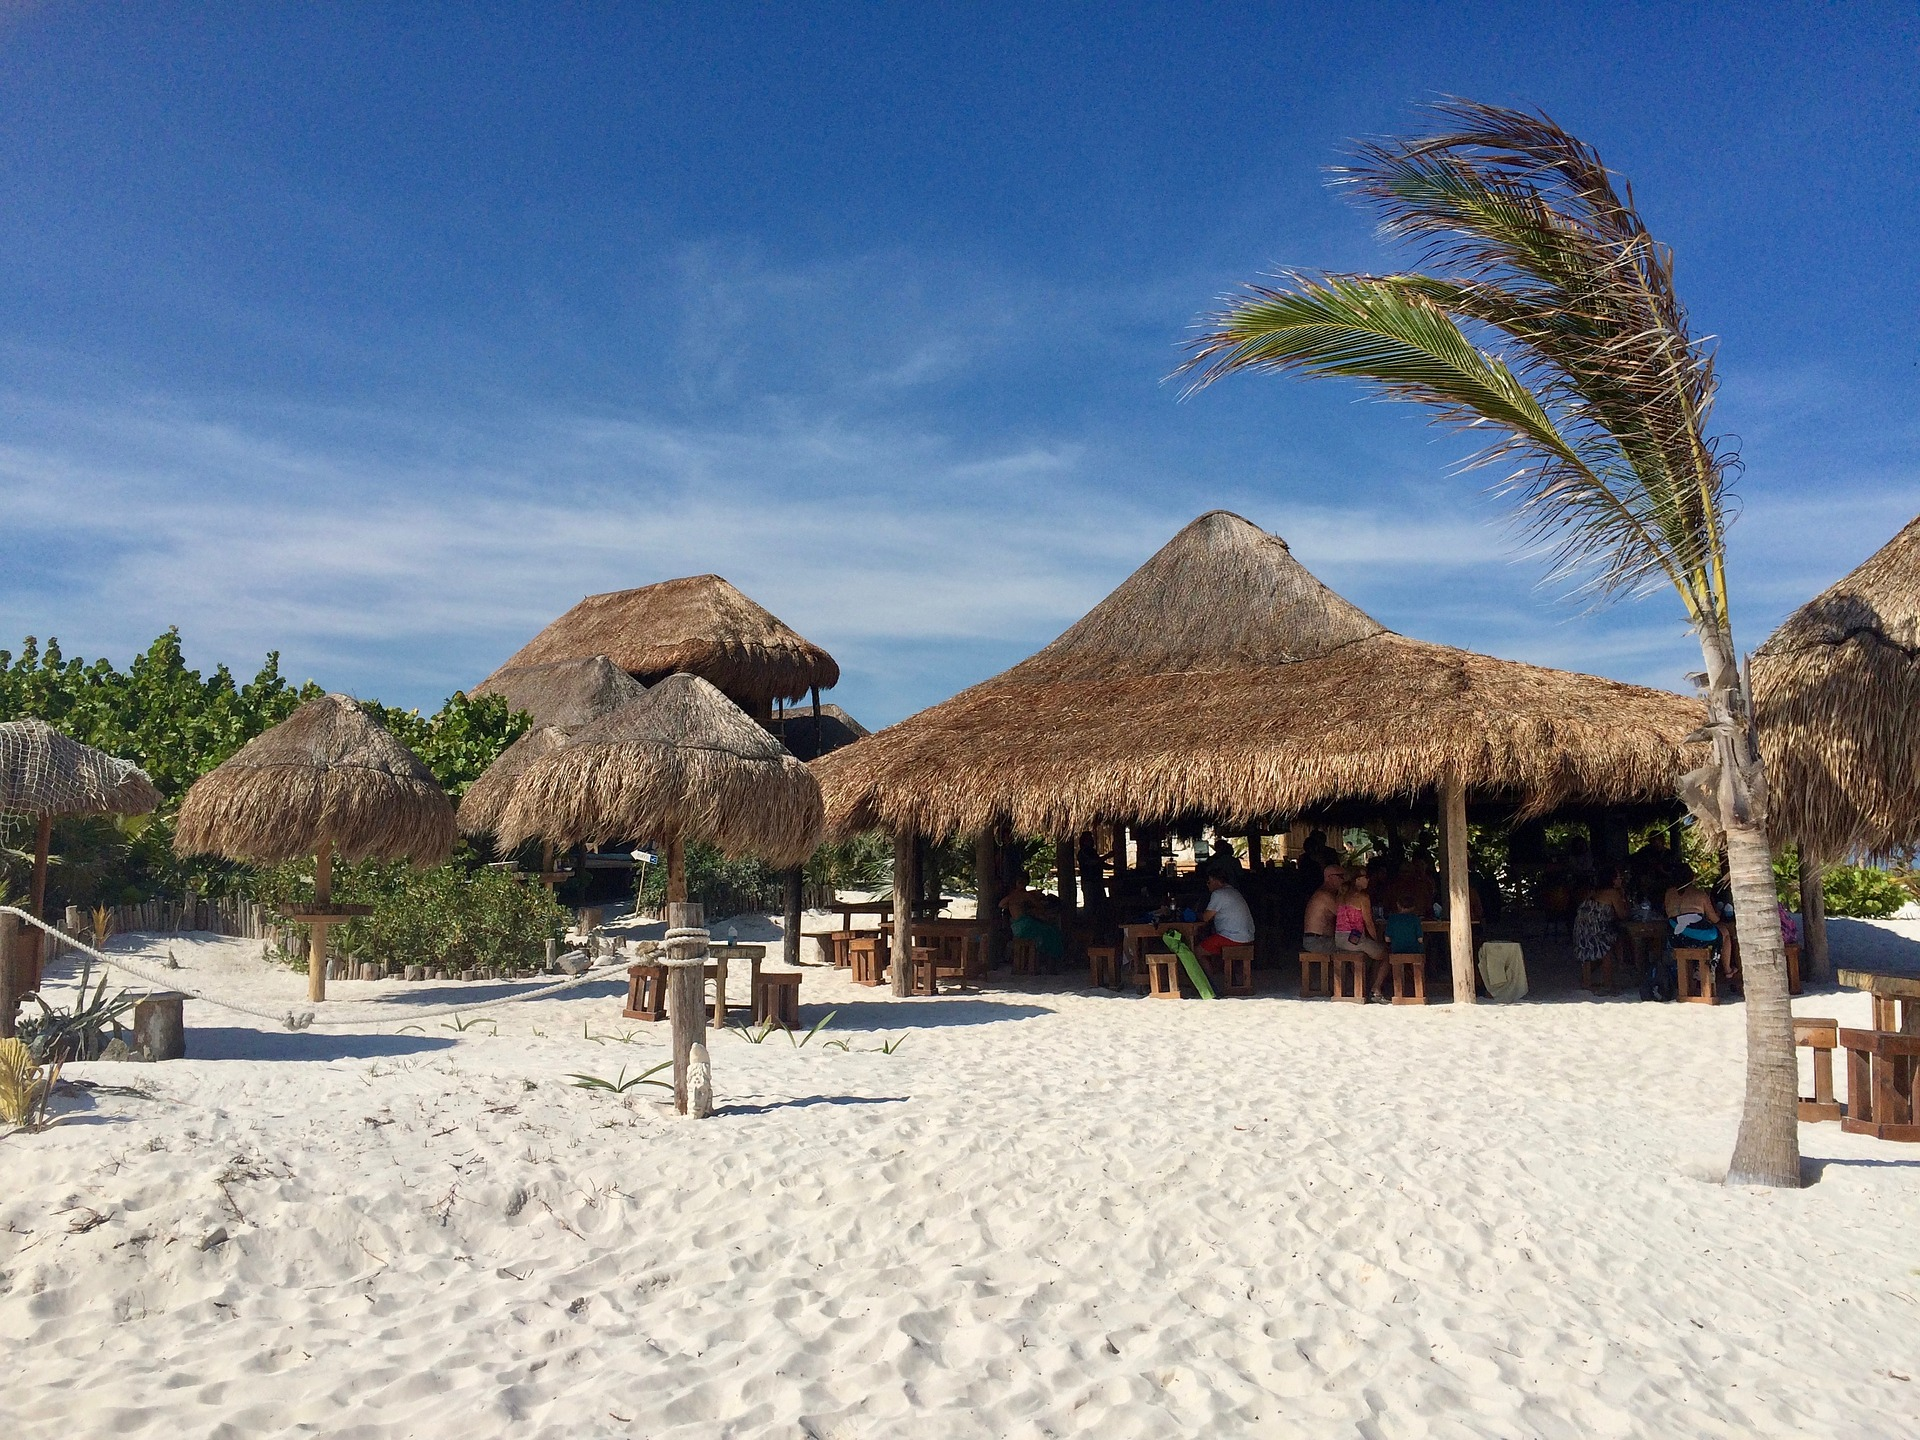 One of the many beaches in Cozumel